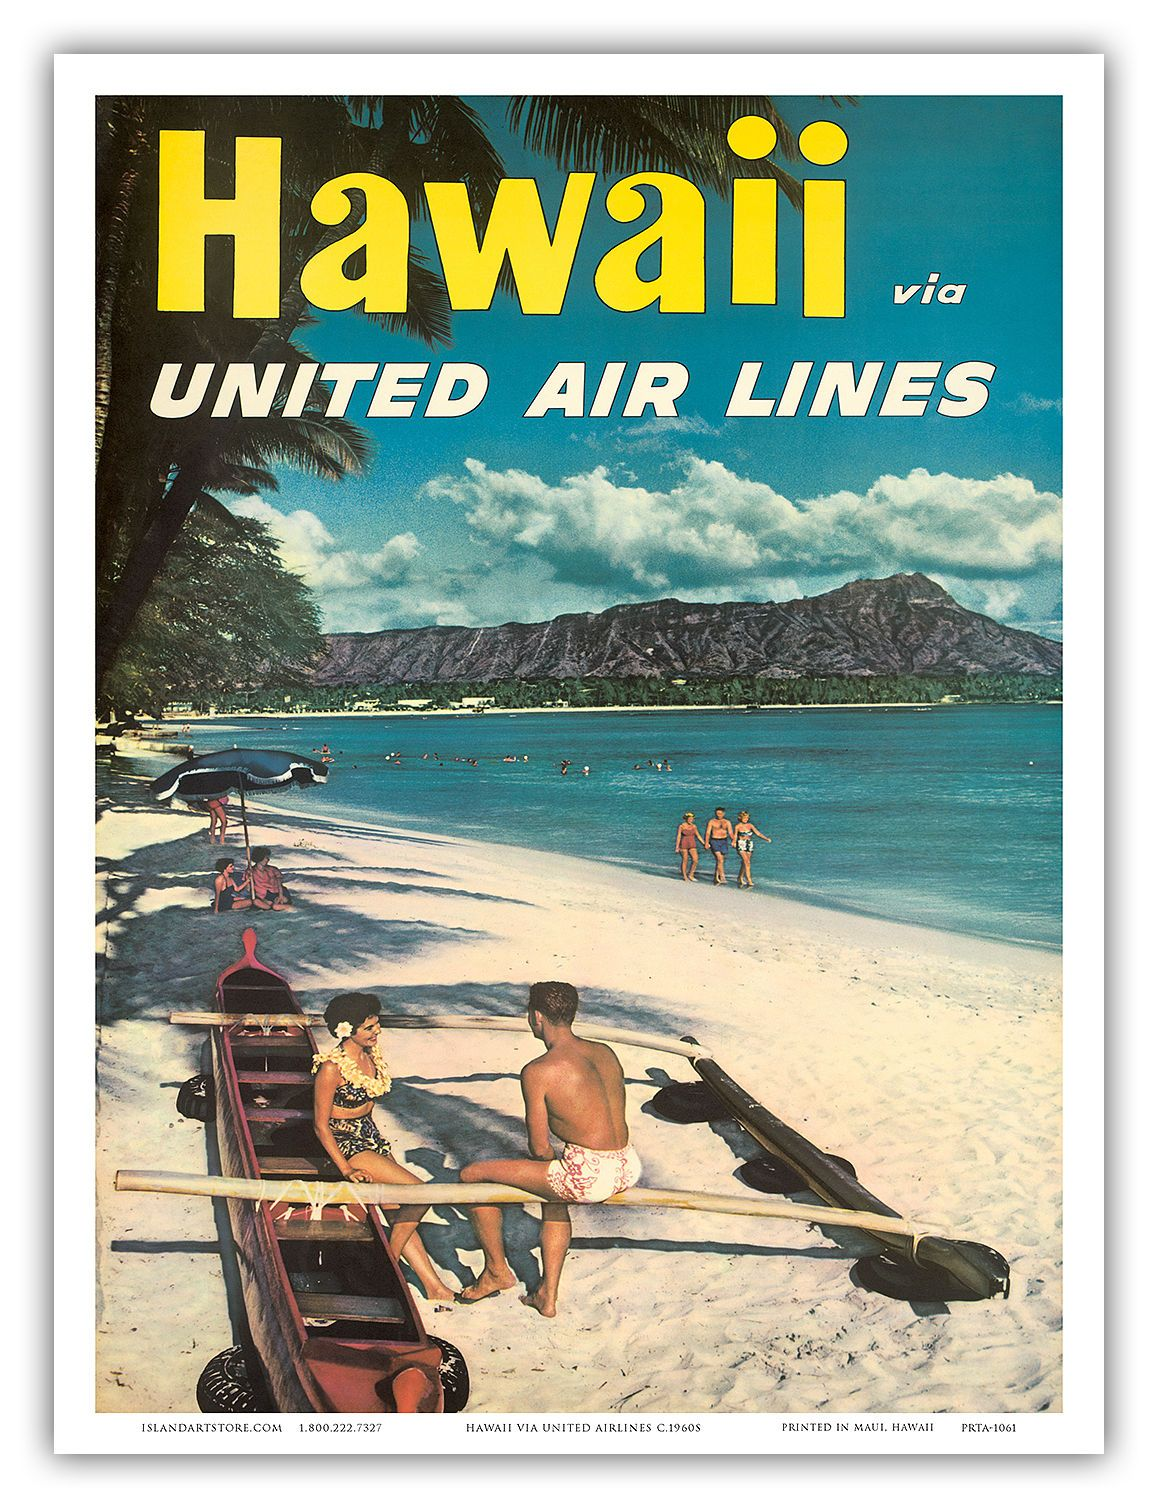 Details About United Air Lines Hawaii Diamond Head 1960s Vintage